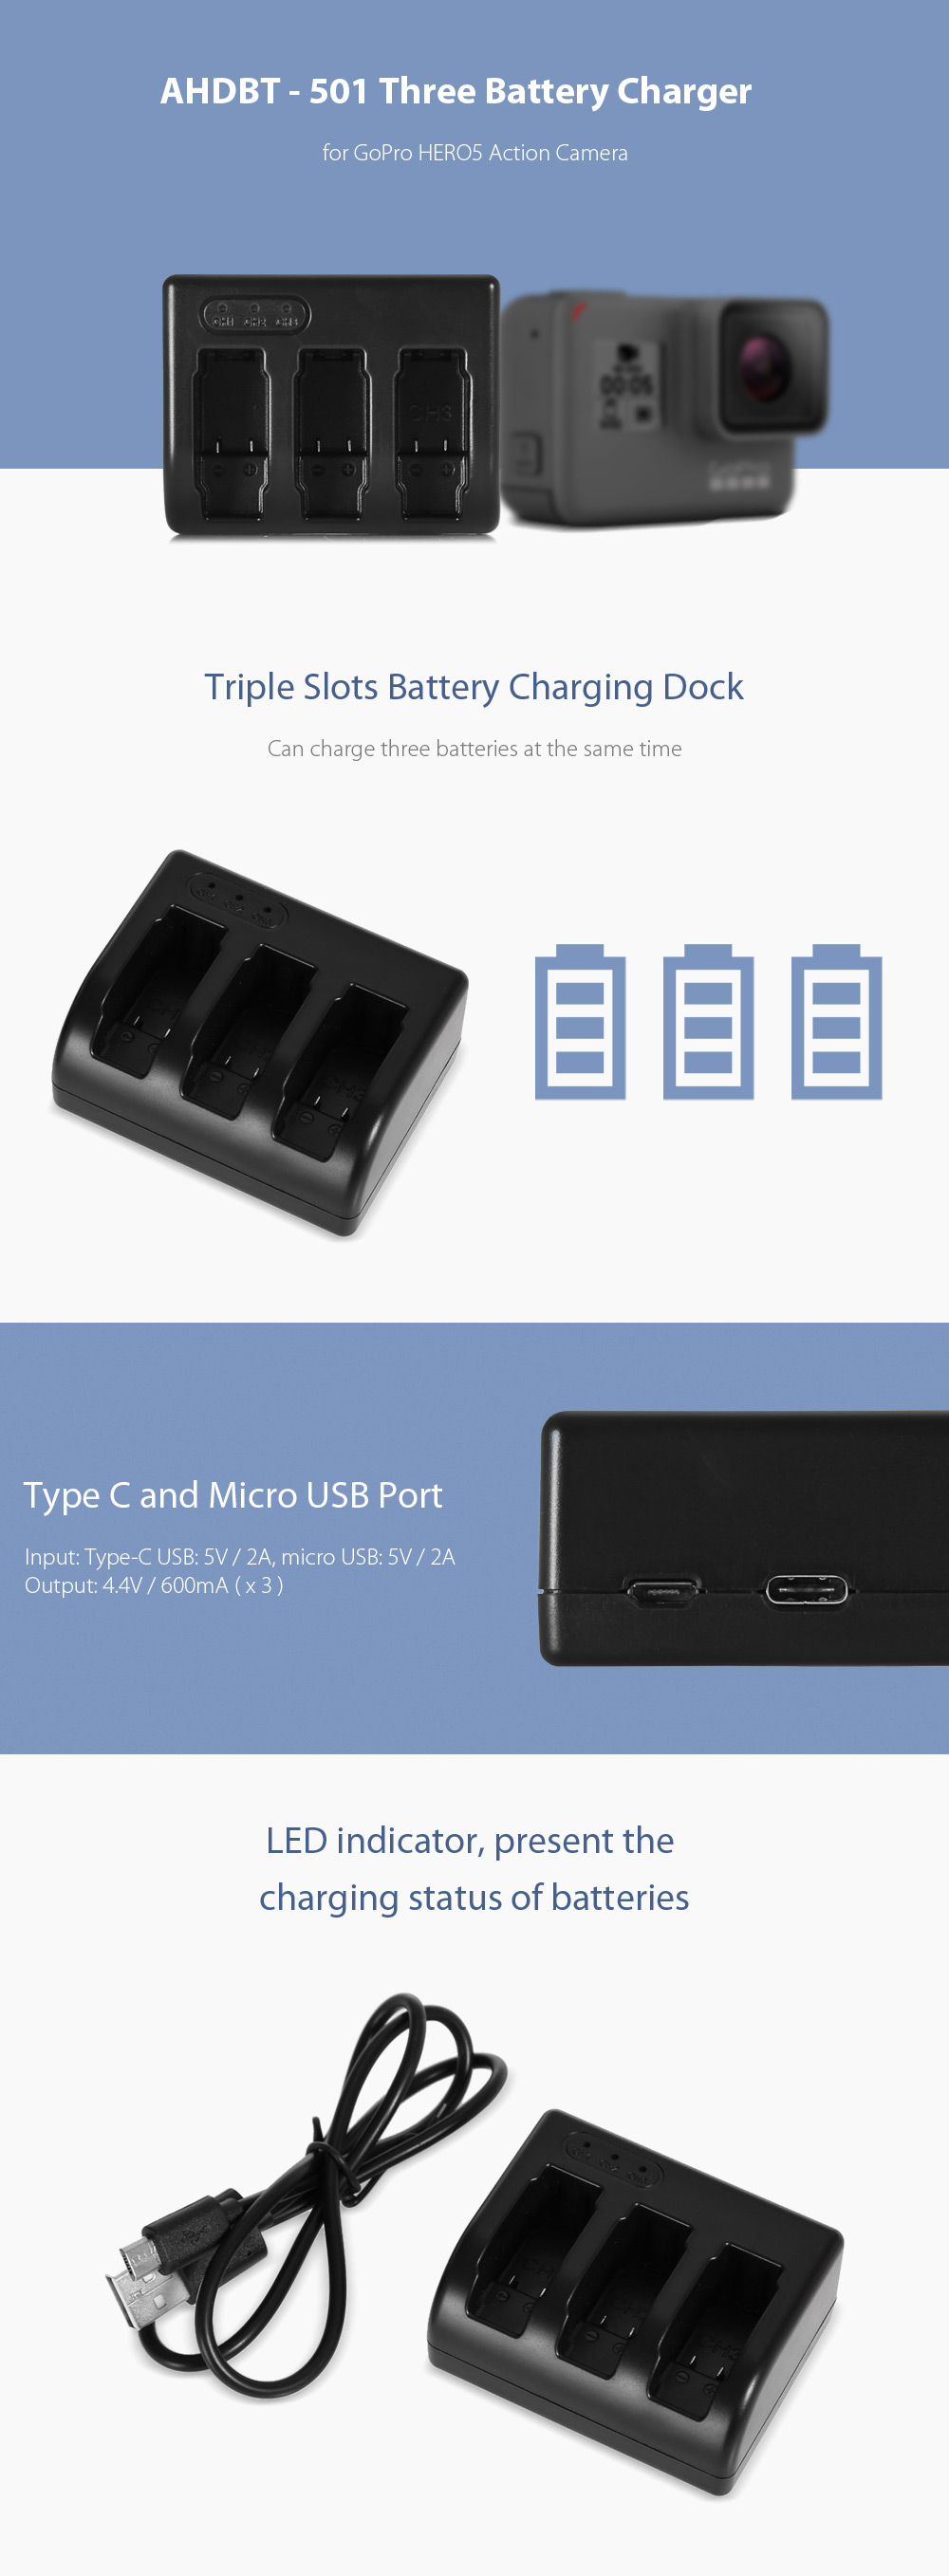 AHDBT - 501 Triple Battery Charging Dock for GoPro HERO5 Action Camera